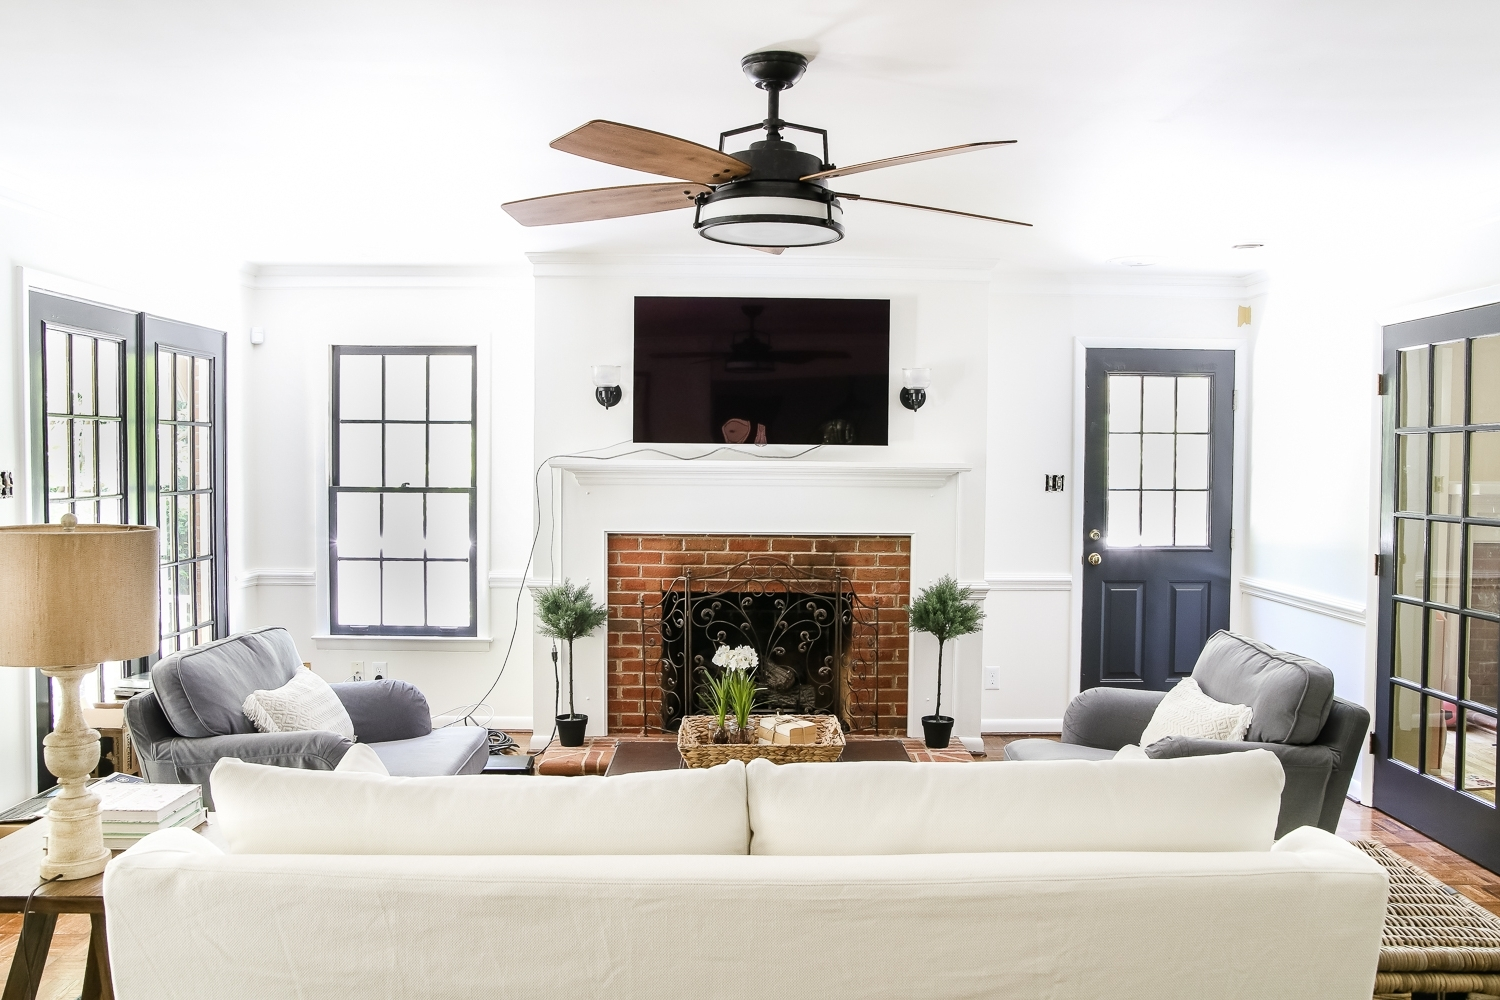 Living Room Update: Ceiling Fan Swap – Bless'er House Within Current Outdoor Ceiling Fans Under $ (View 6 of 20)